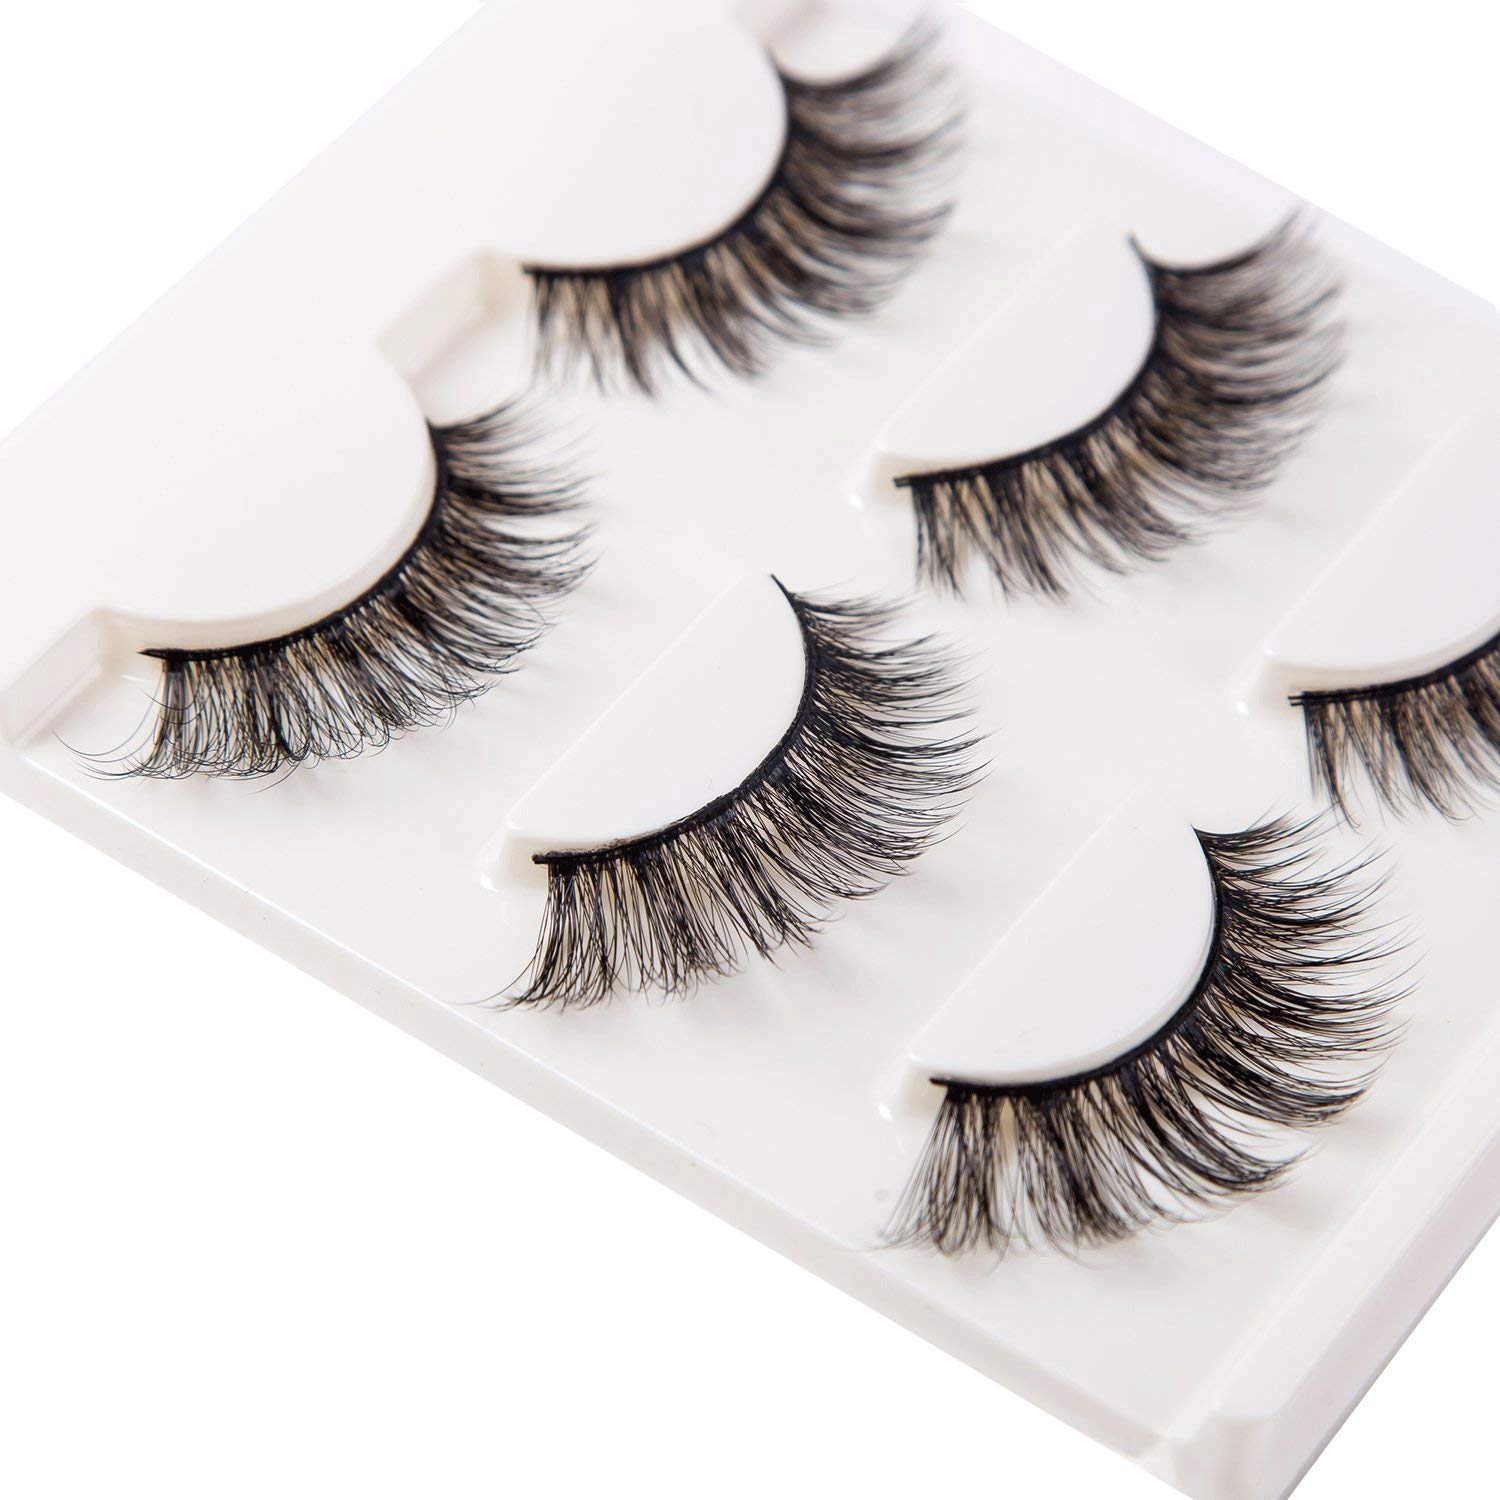 Beauty Essentials Delicious 2 Pairs 3d Fiber Hand Made Black Fake Eyelashes Natural Crisscross Extension False Eyelashes For Makeup Beauty Stage Makeup False Eyelashes